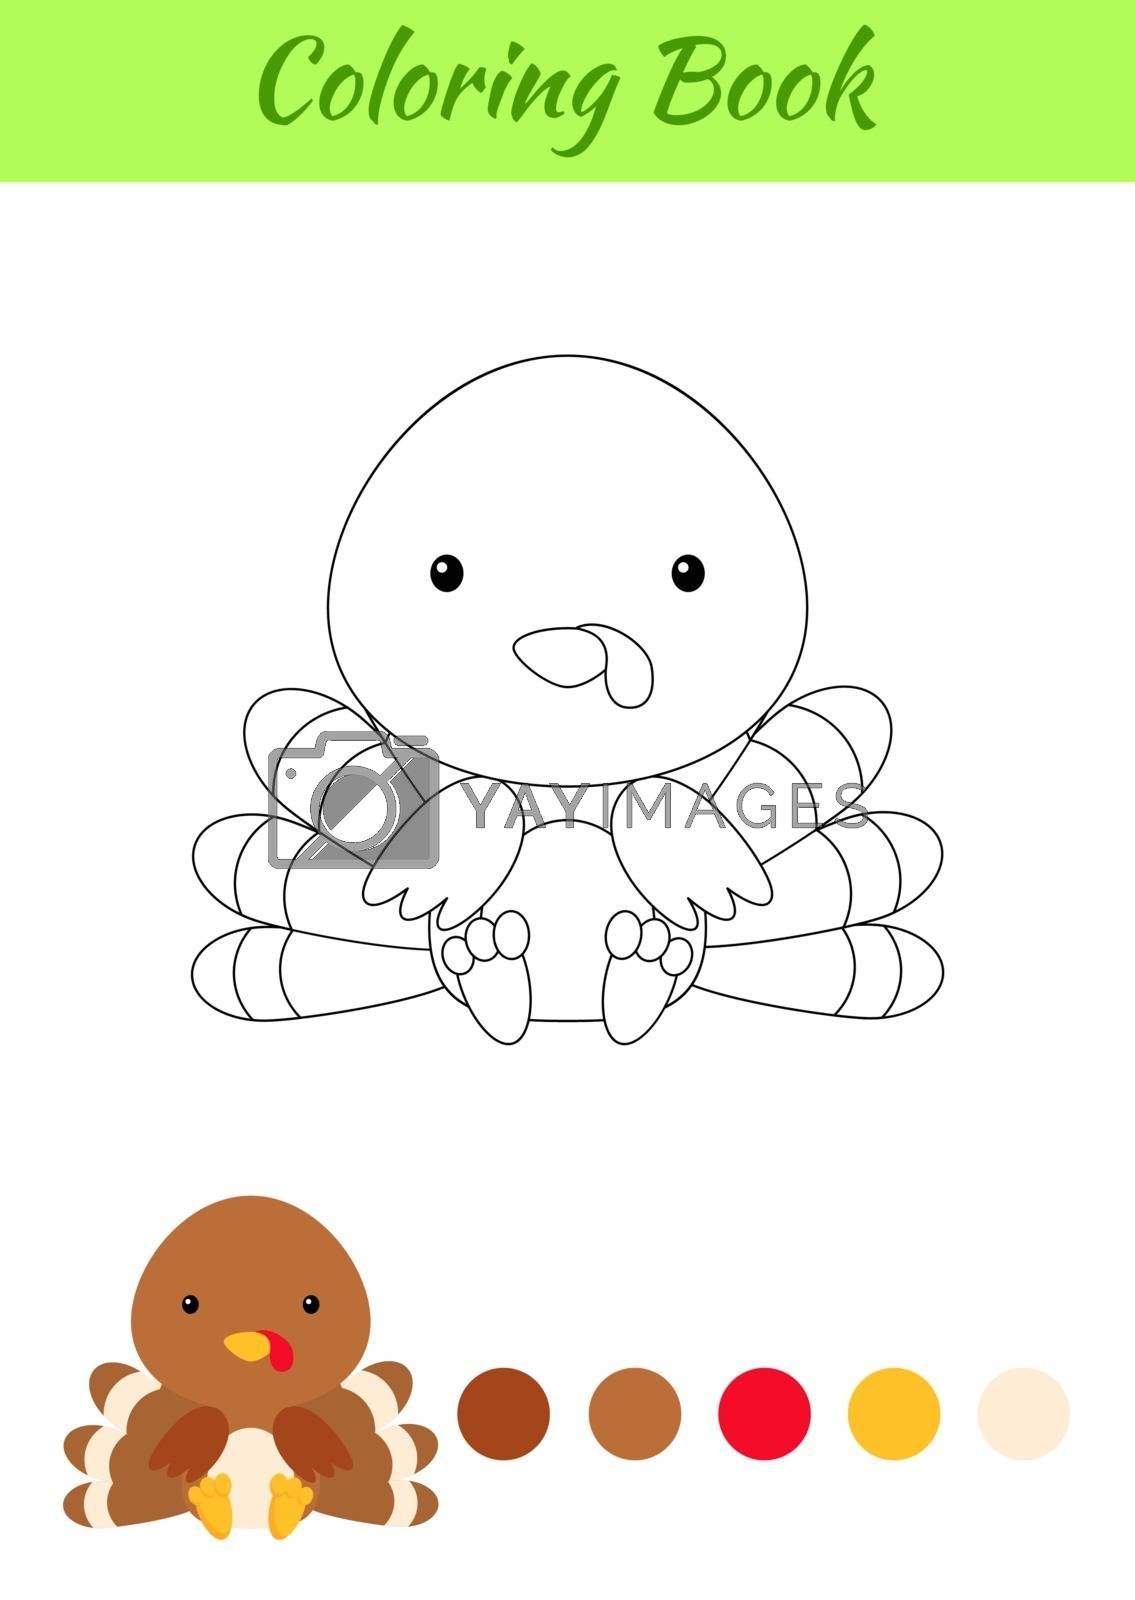 Coloring page little sitting baby turkey. Coloring book for kids by Melnyk